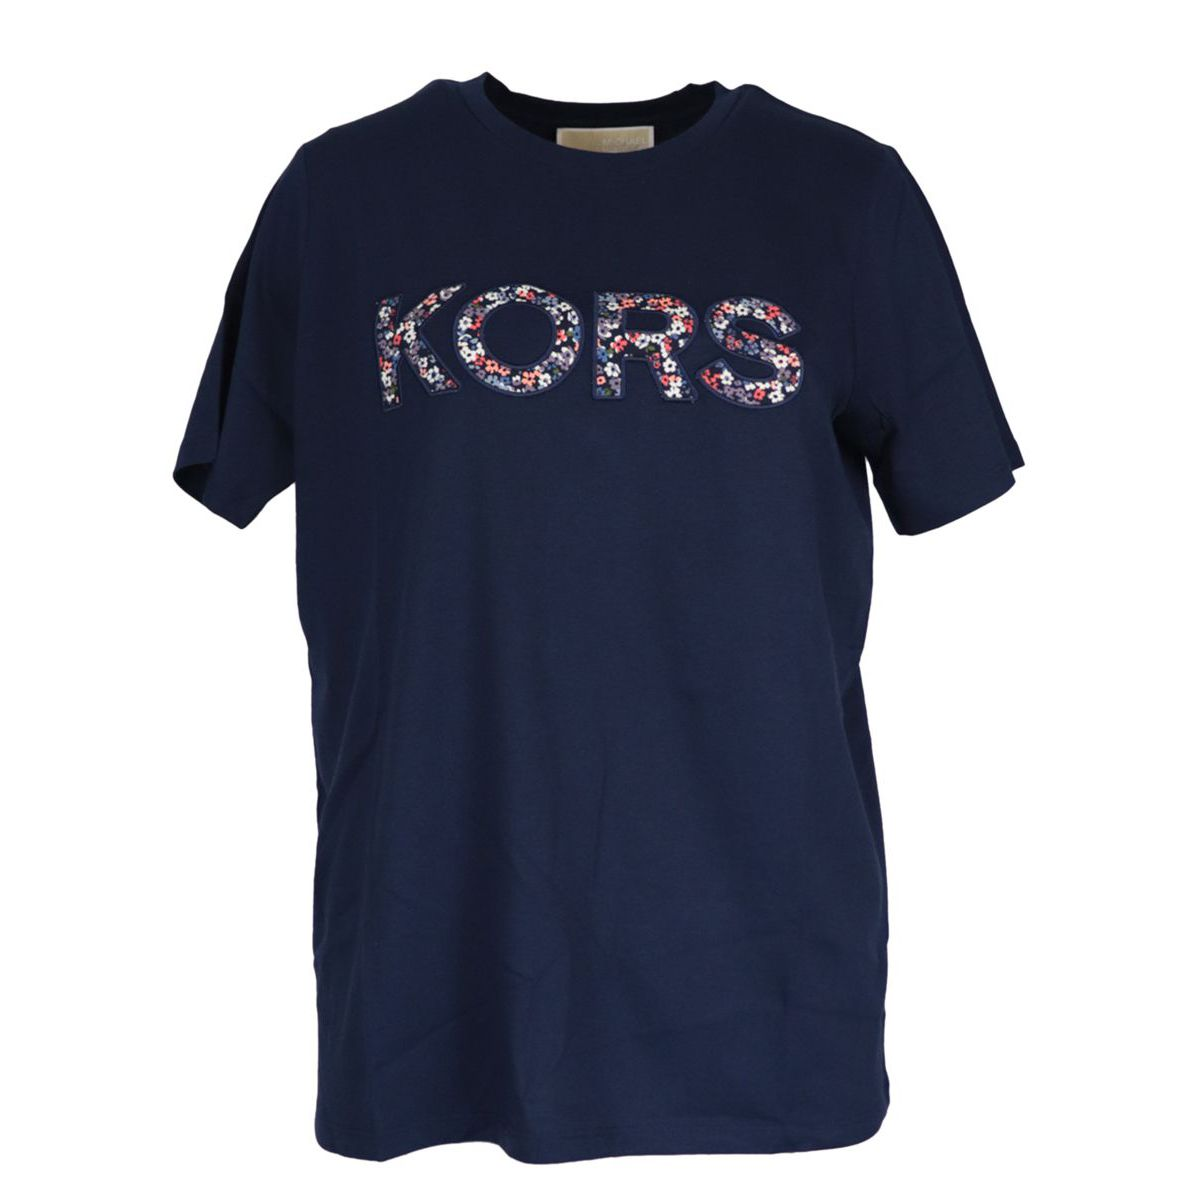 Cotton t-shirt with maxi contrasting floral logo print Navy Michael Kors